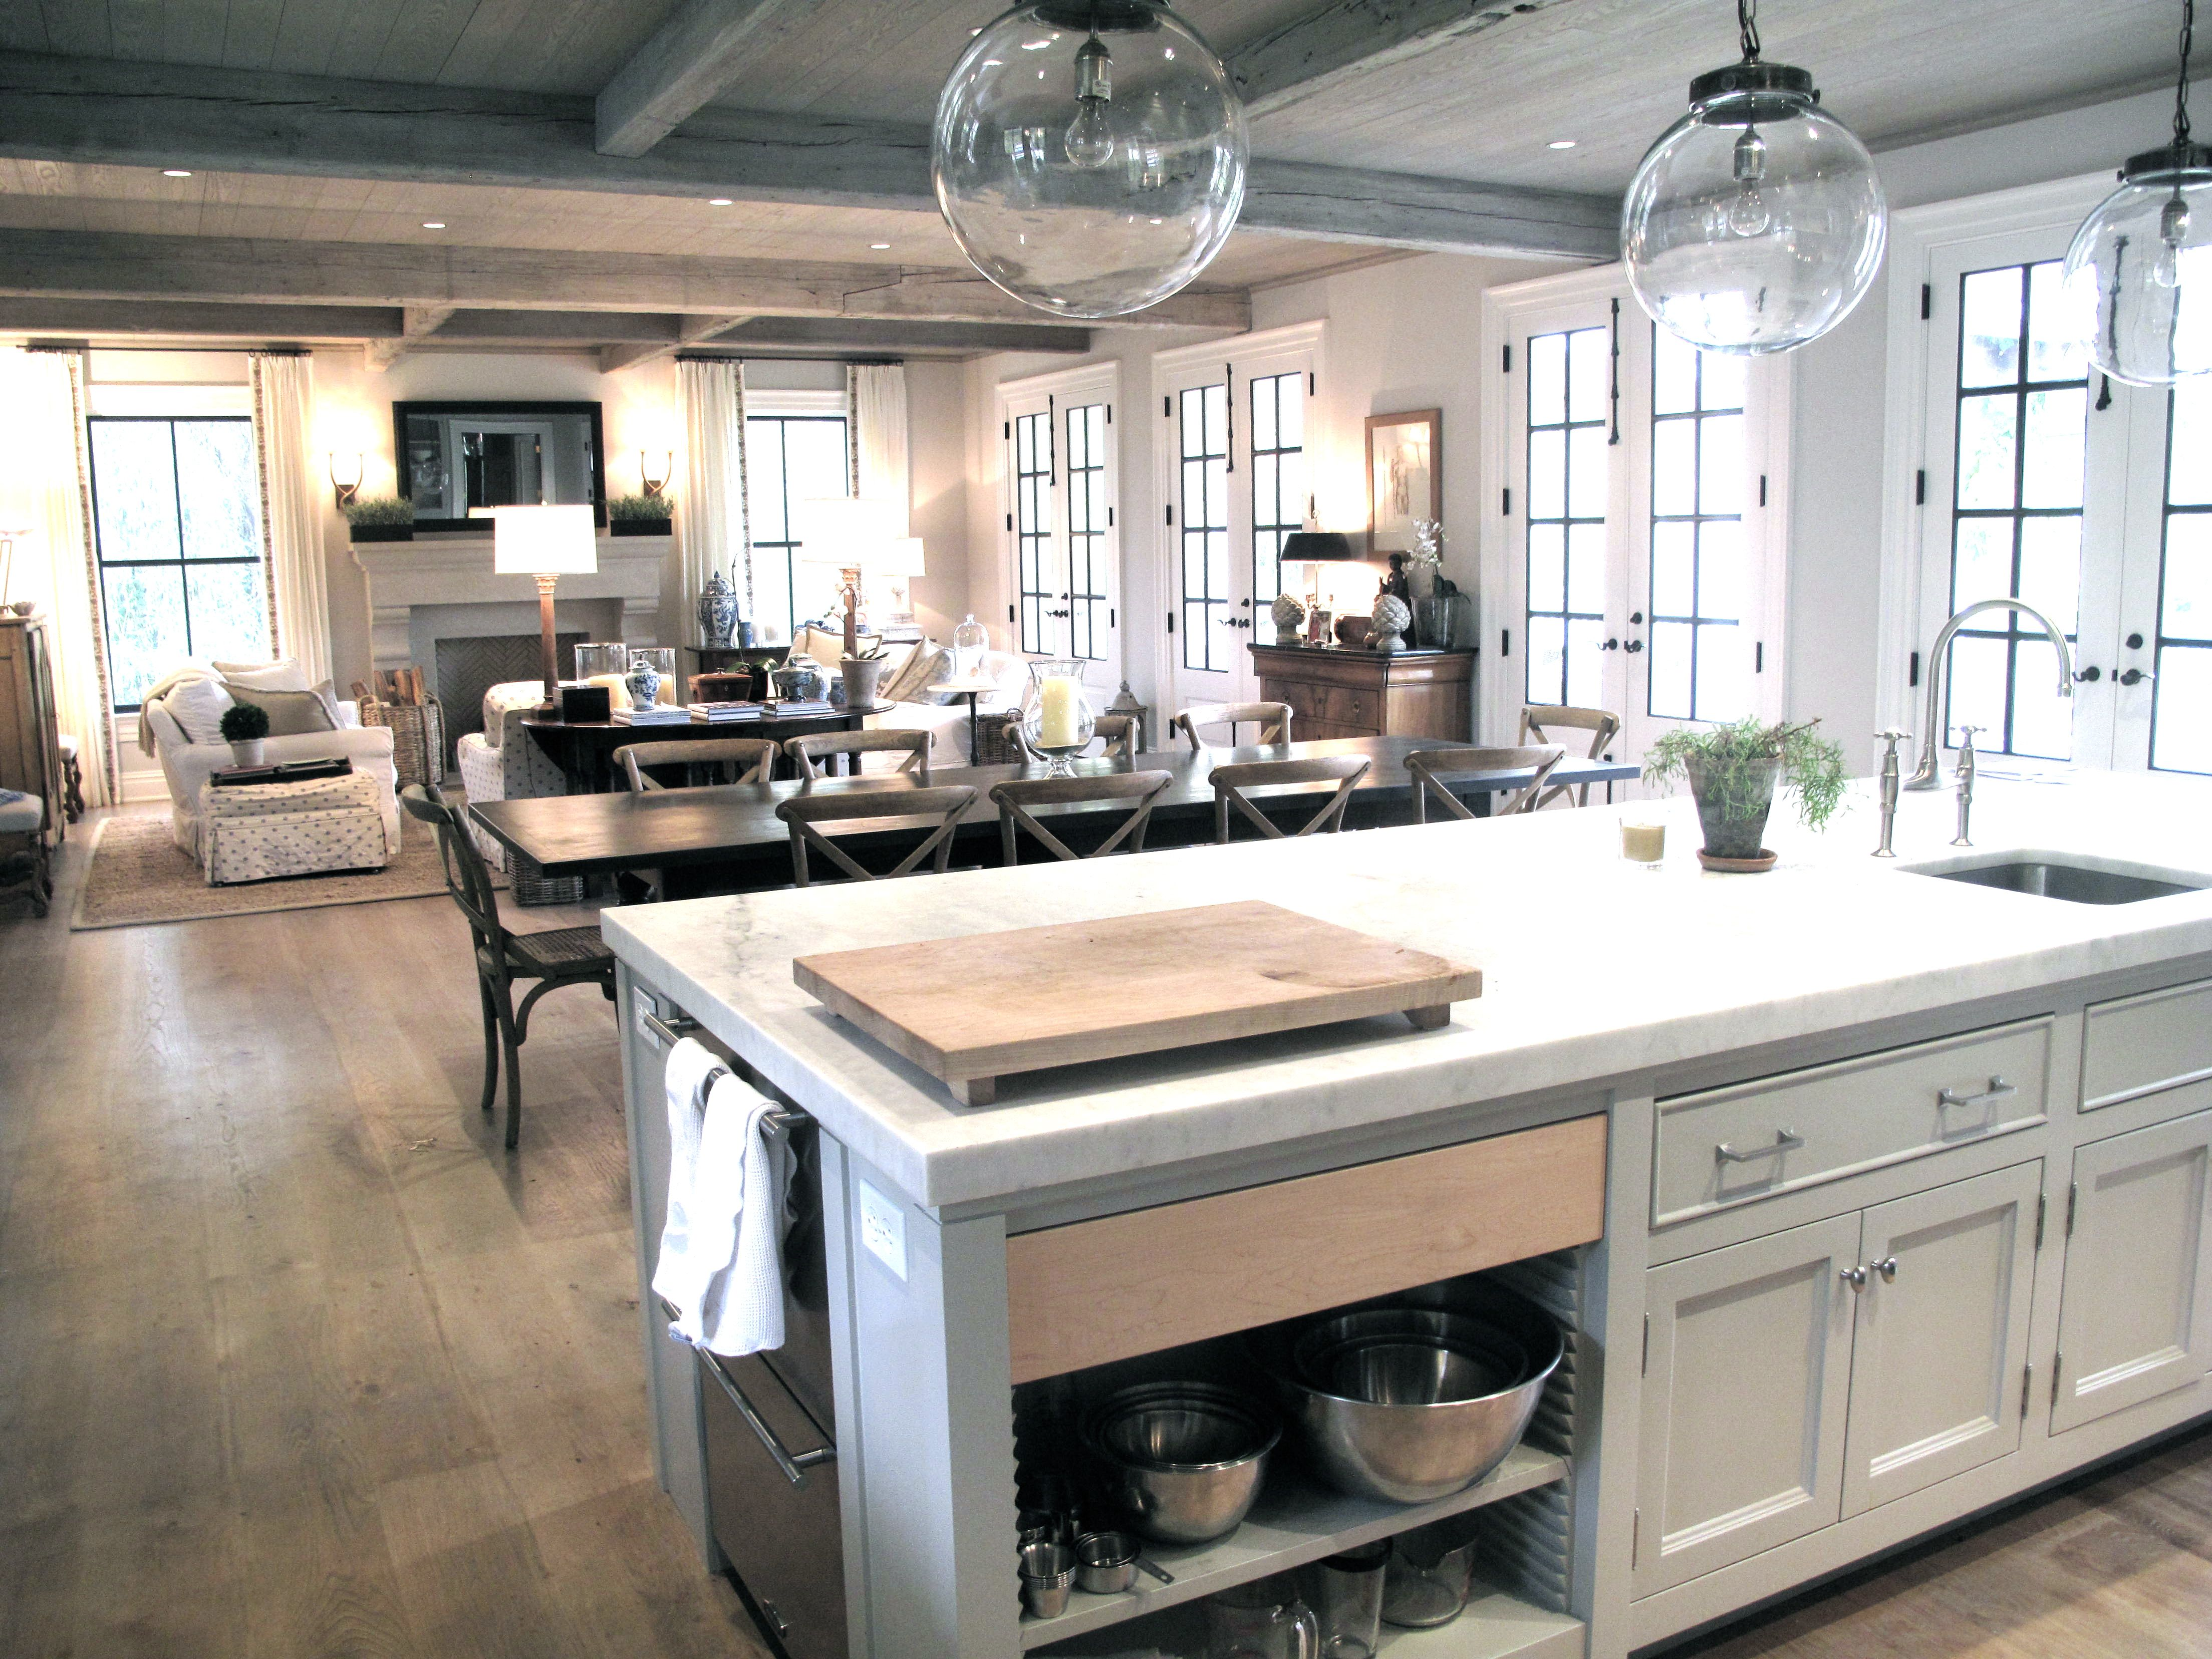 Living Room Kitchen Dining Layouts Bedroom In Ideas Design Process Floor Plan Home Open House This Is The Plane I Dream Of Love That All 3 Places Flow Together Making A Perfect To Entertain